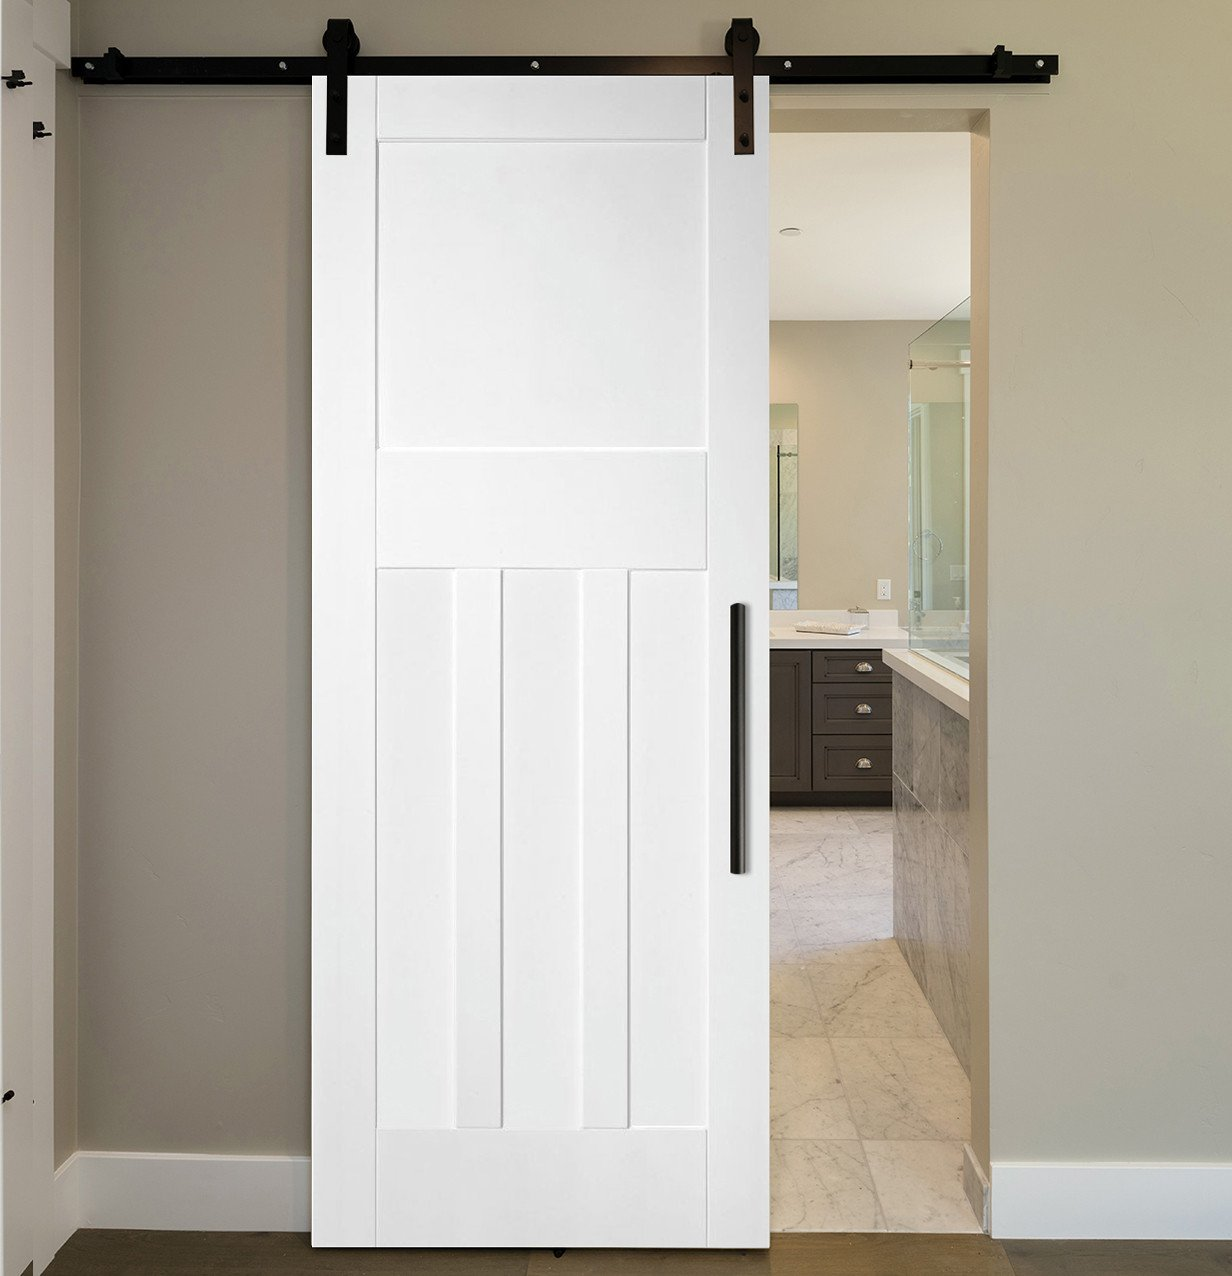 Sliding Barn Door for Bedroom Lovely 3 Vertical and 1 top Panels Sliding Mdf Shaker Barn Door Swd 0008